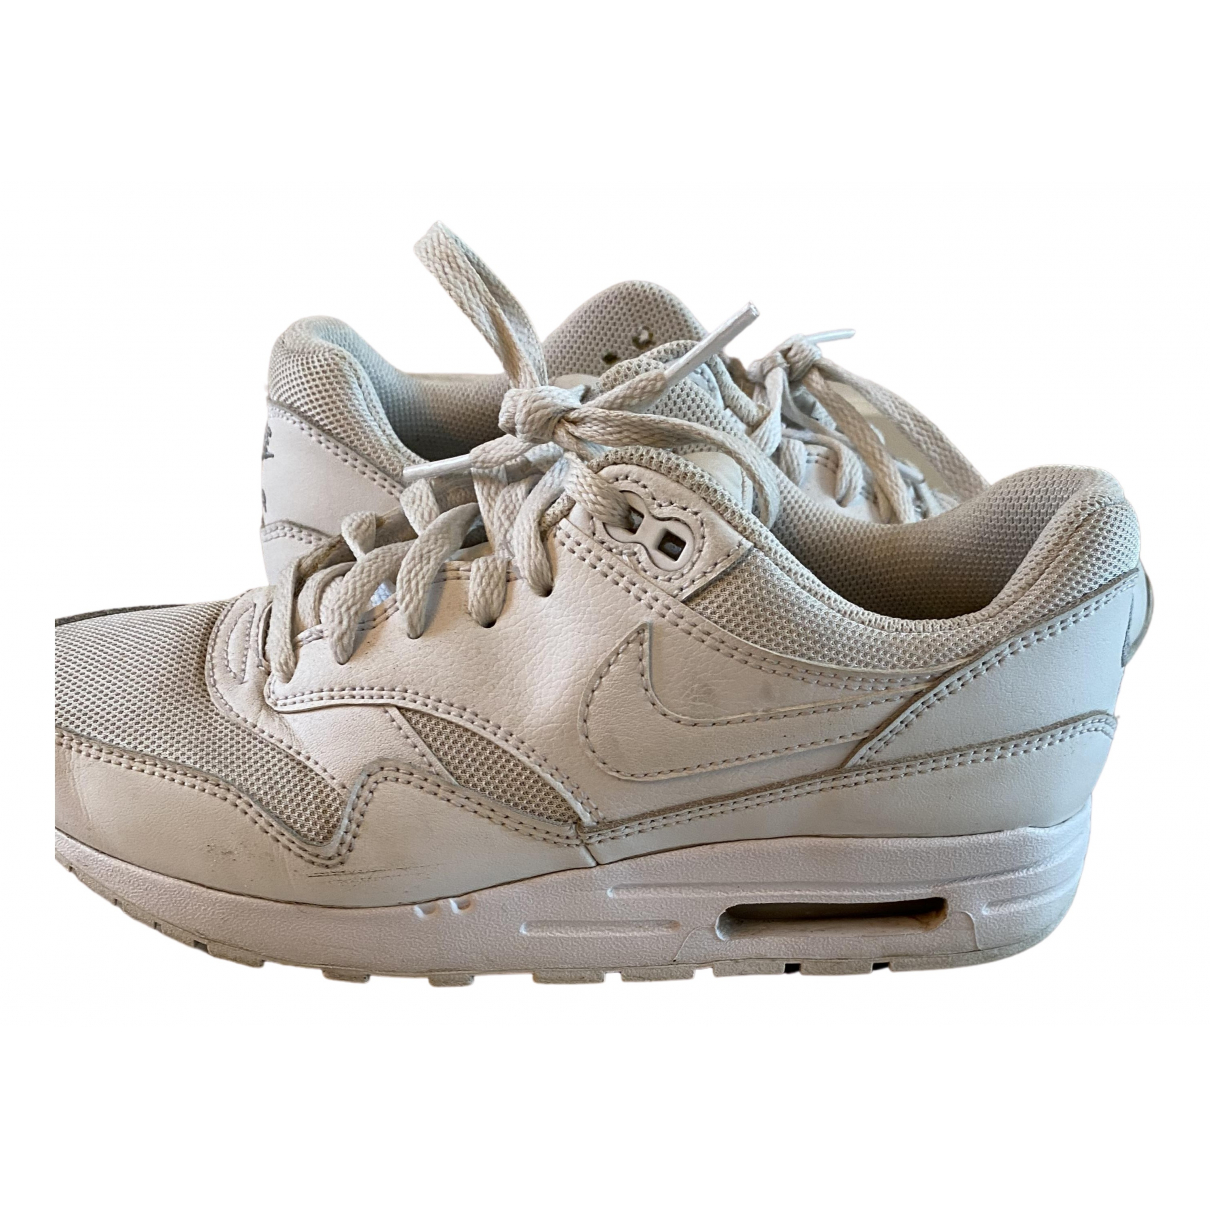 Nike Air Max 1 Sneakers in  Weiss Leder